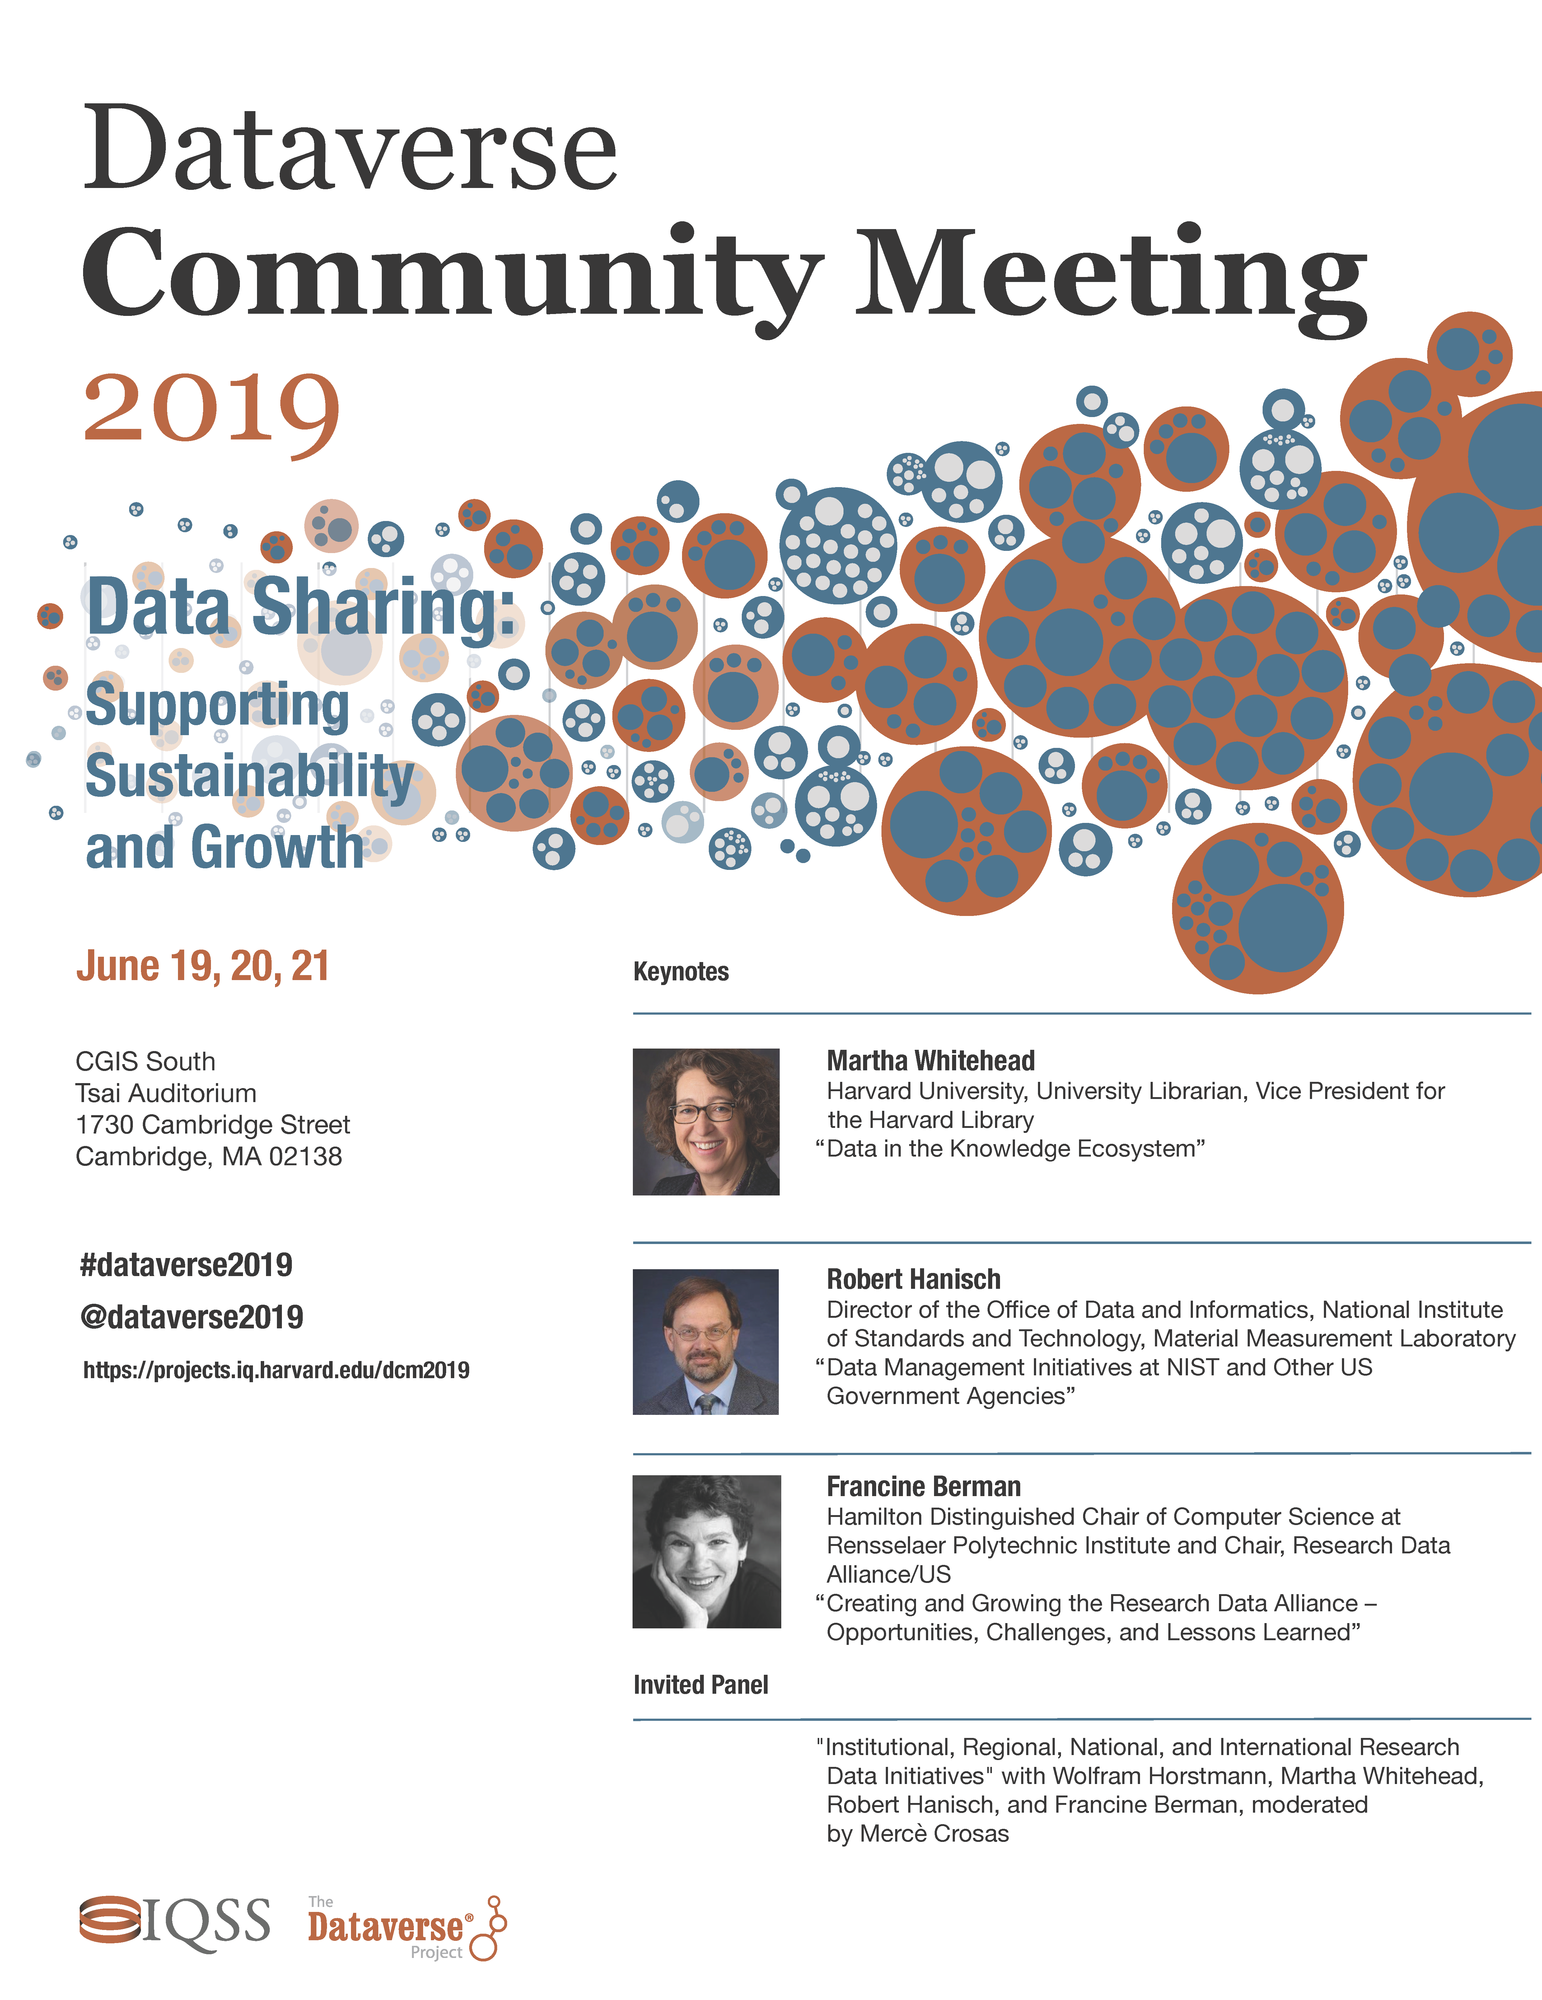 Dataverse Community Meeting Flyer